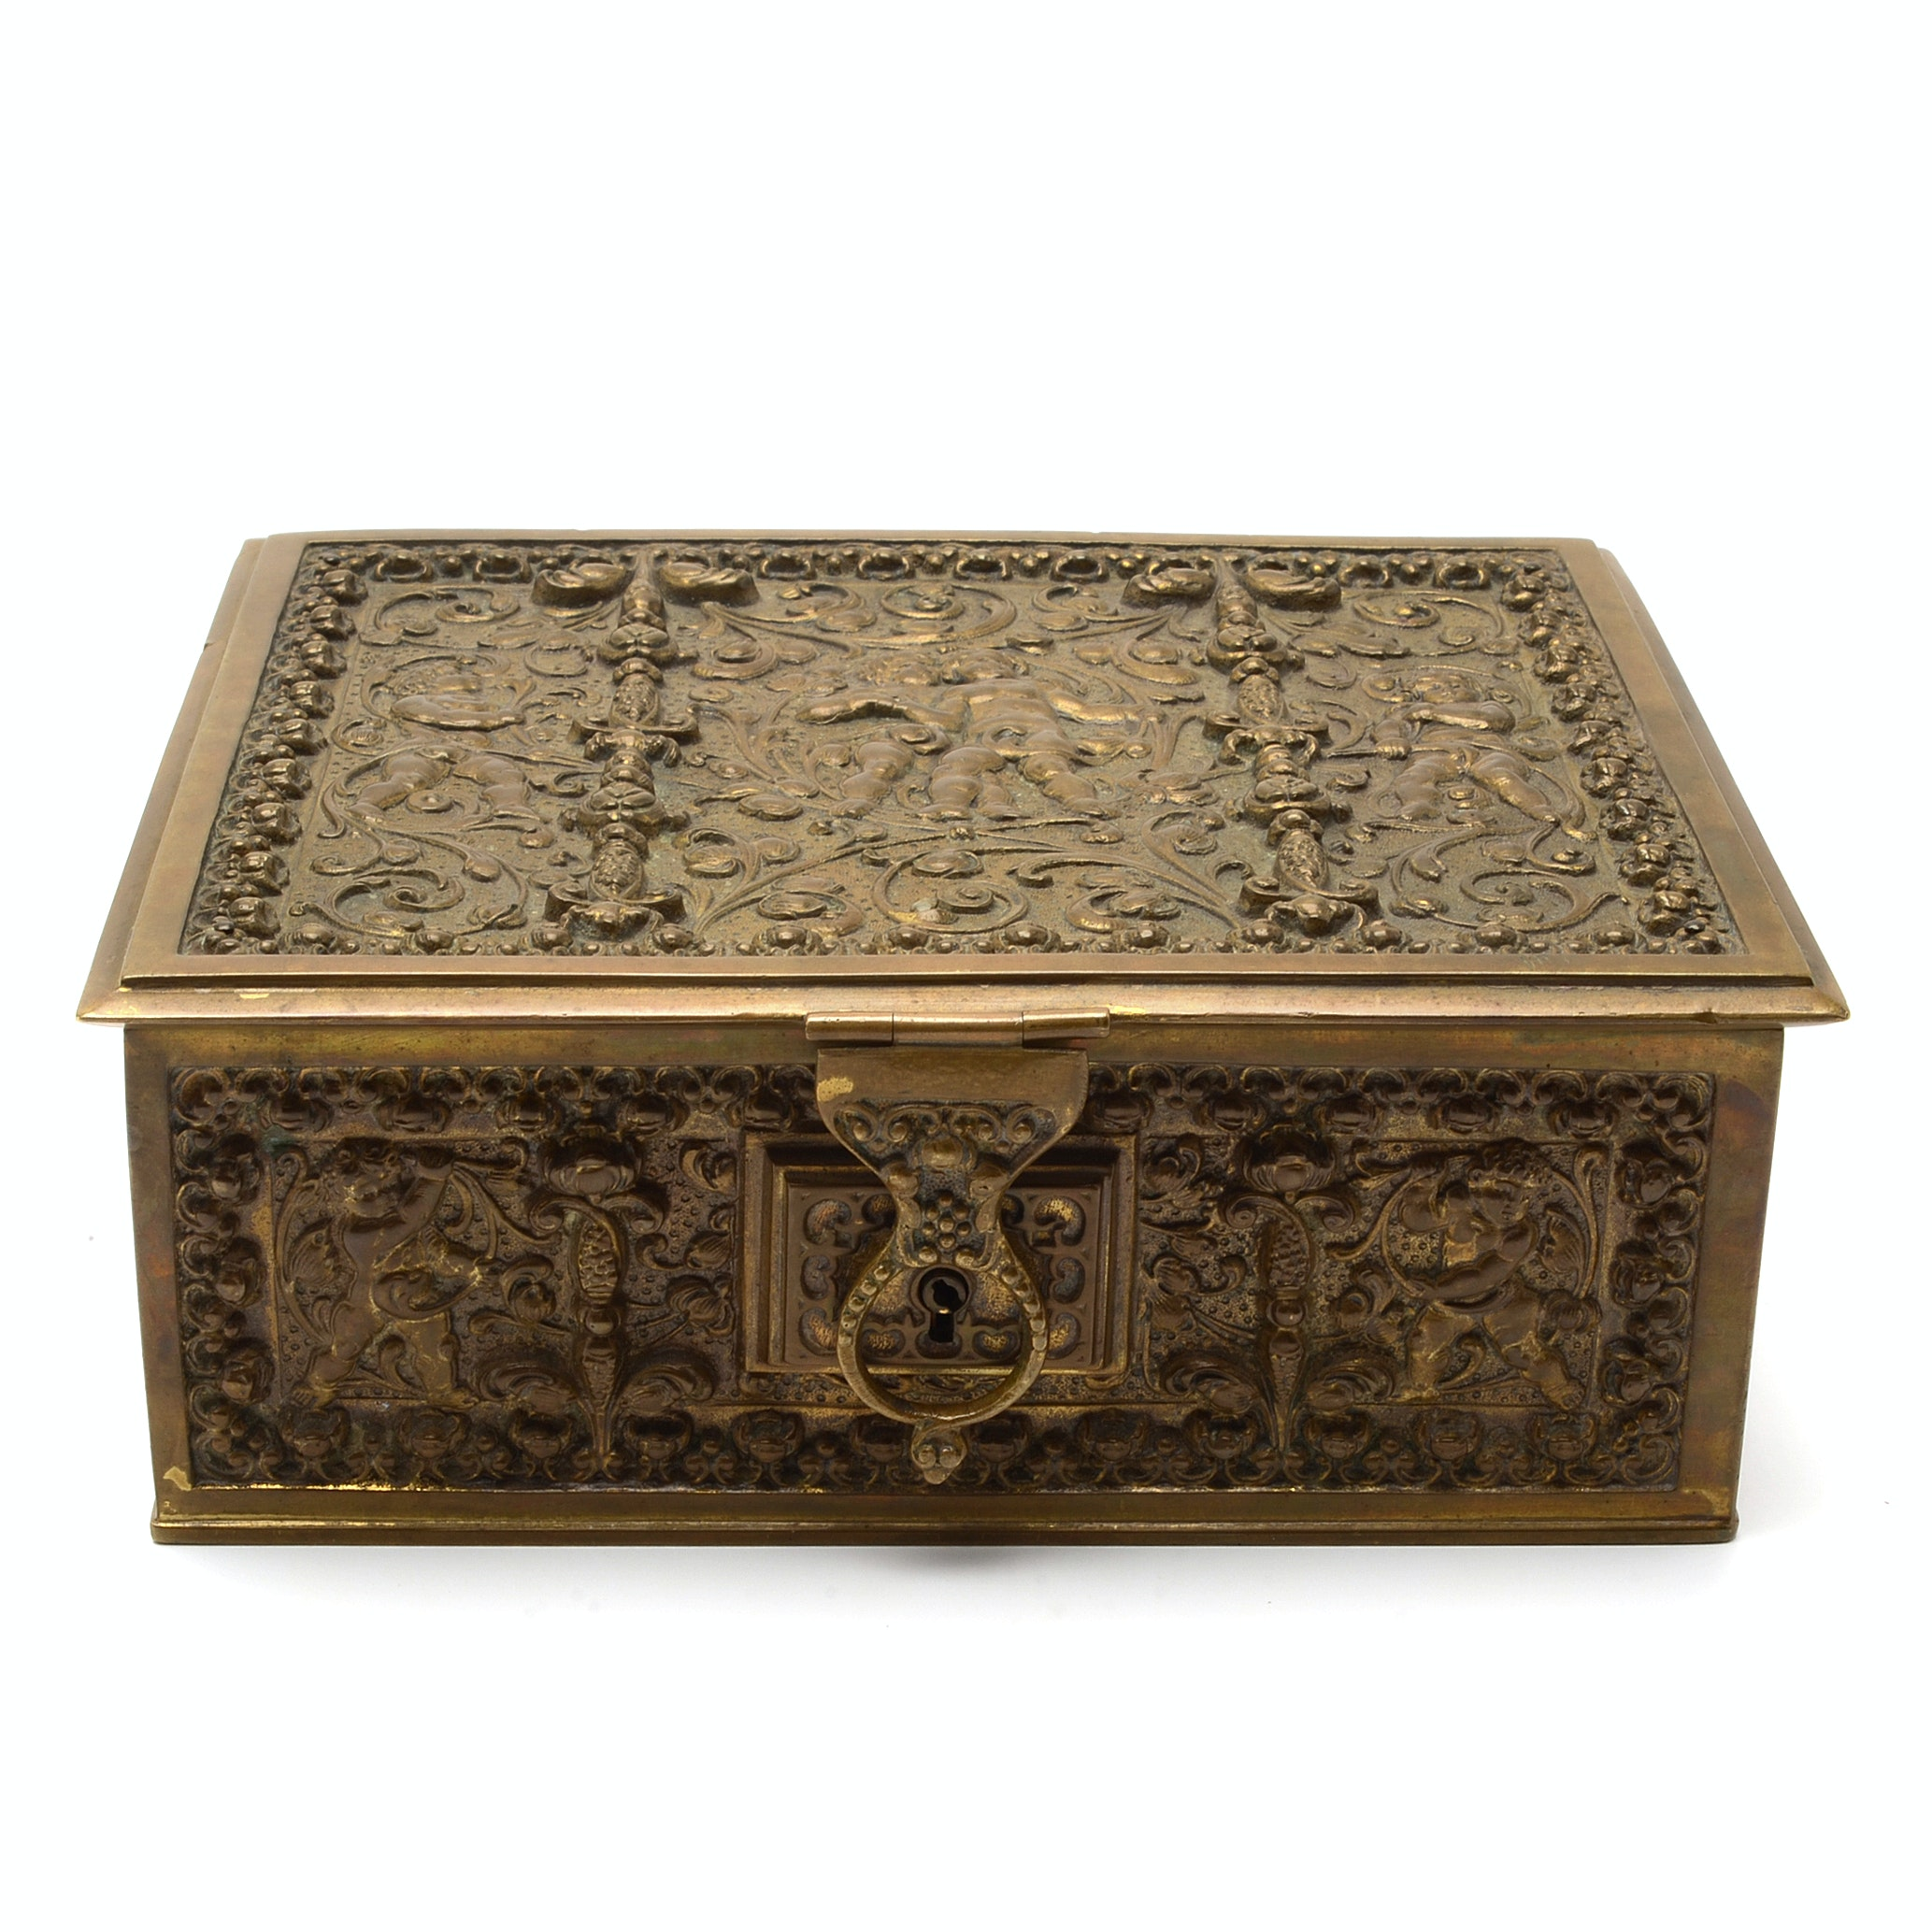 Erhard and Sohne Cast Brass Jewelry Casket